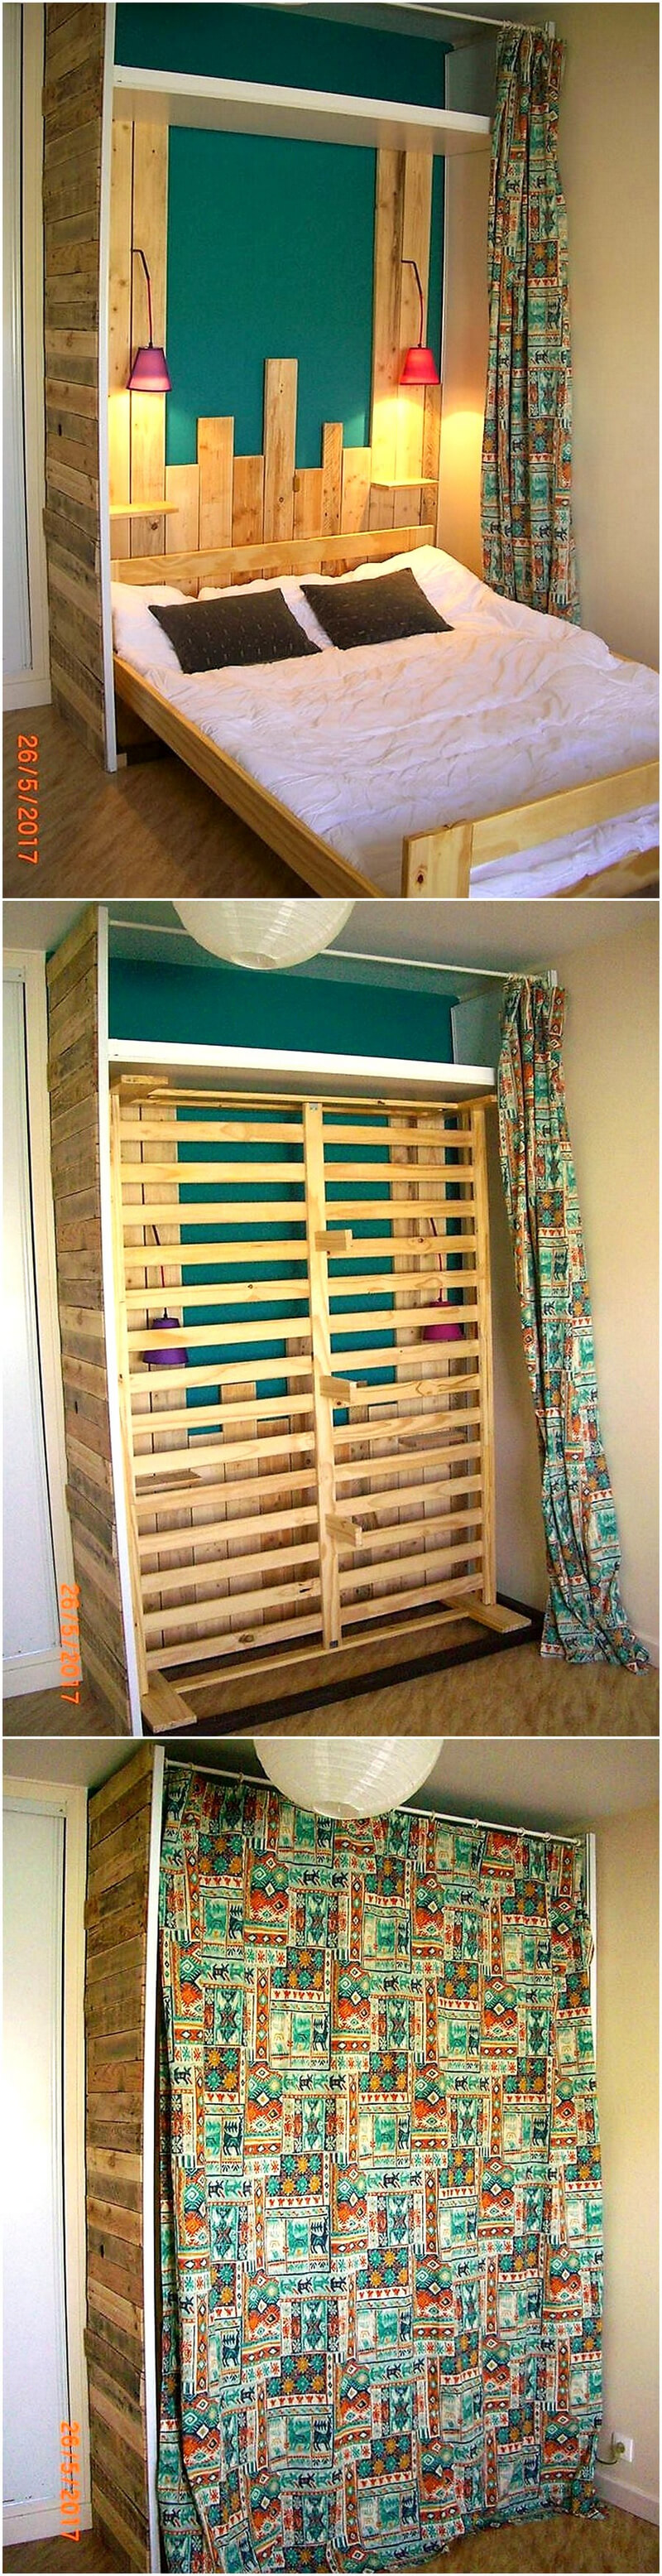 recycled wood pallet bed plan